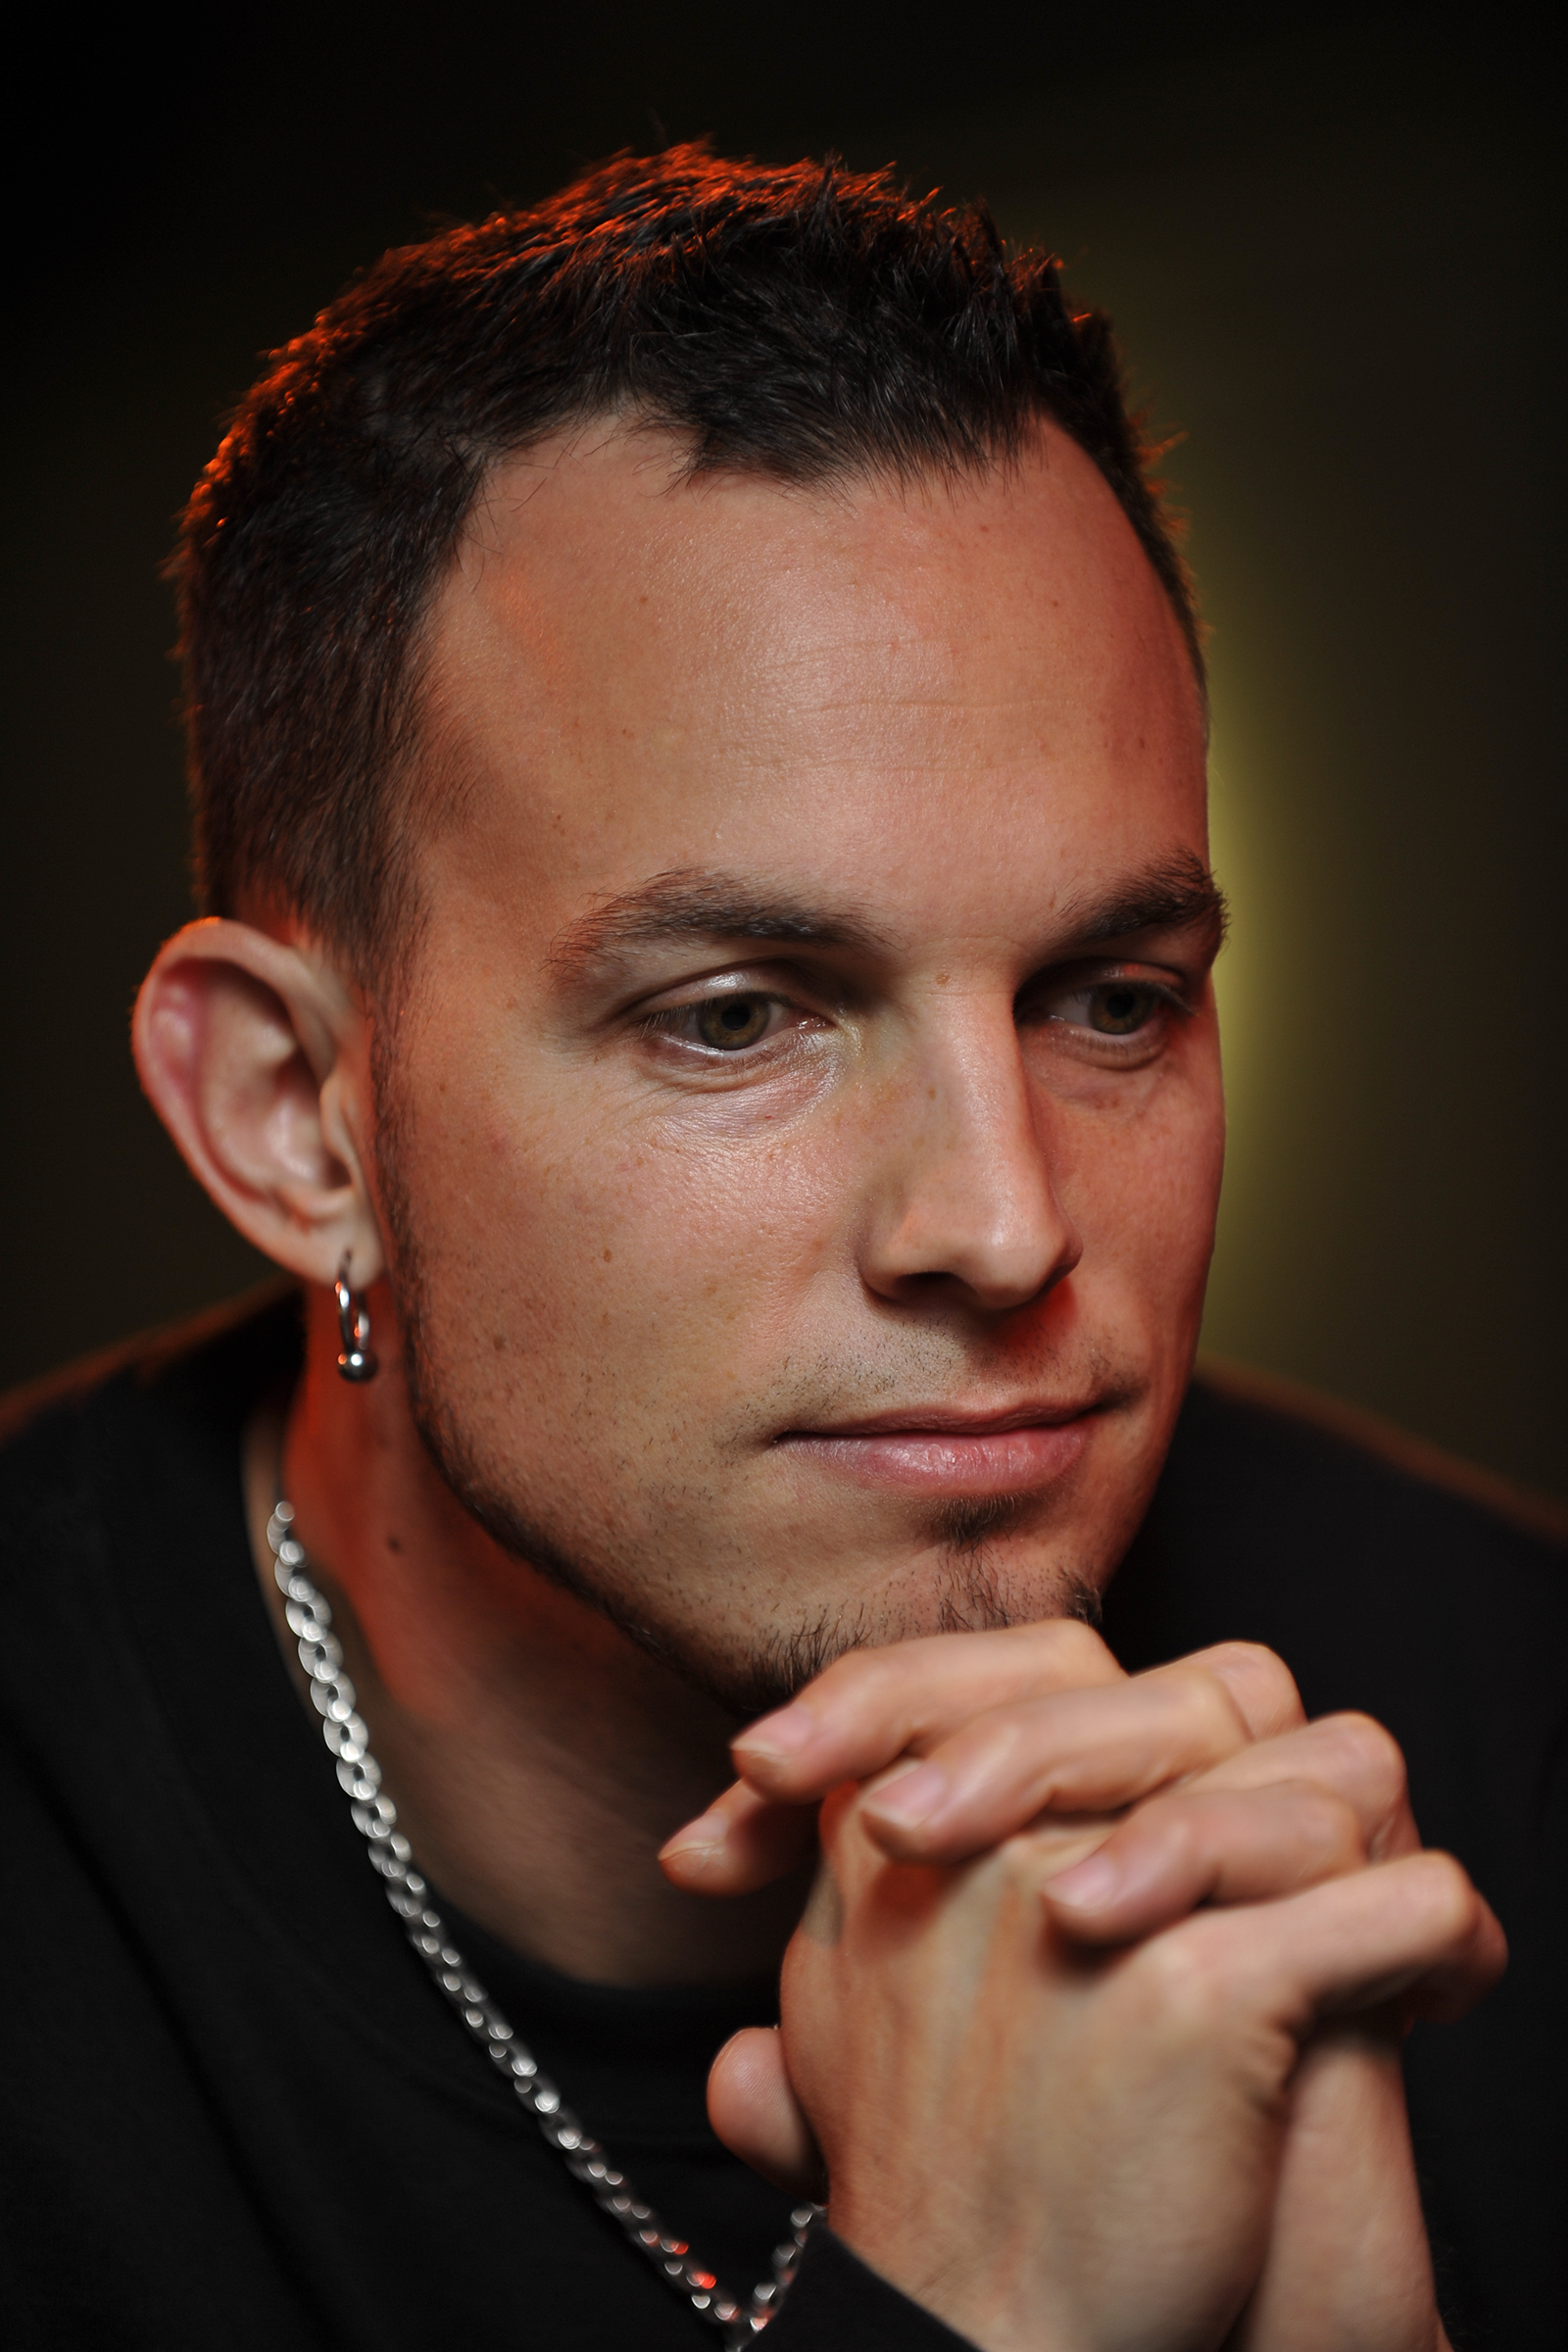 Mark Tremonti, lead guitarist of American rock bands Creed and Alter Bridge. During an interview, Colston Hall. (Photo by Joseph Branston/Guitarist Magazine via Getty Images)